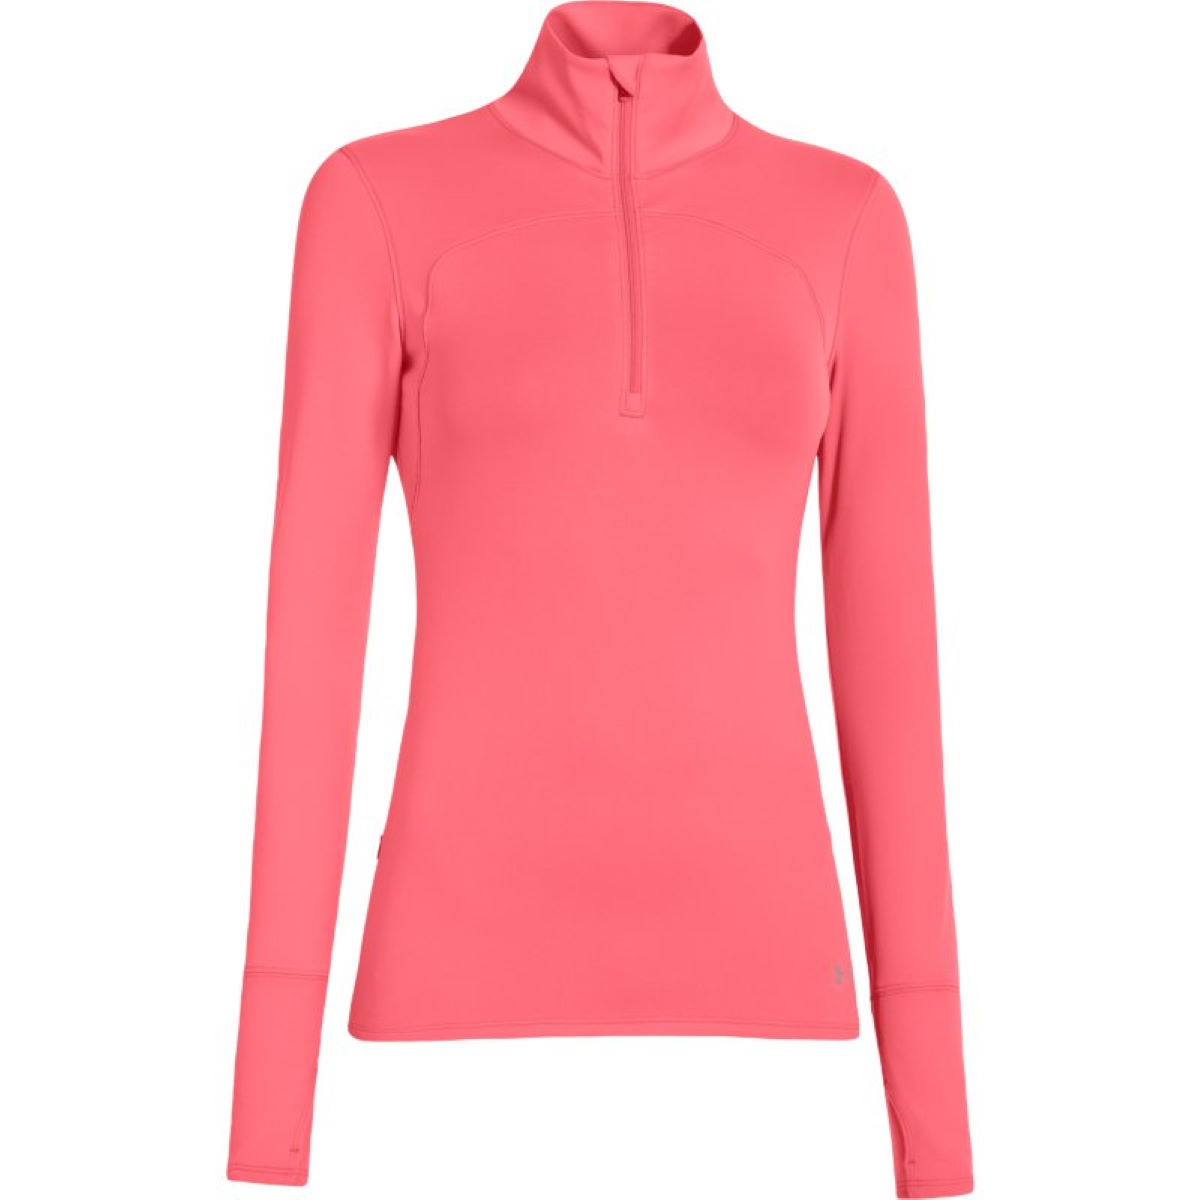 Under Armour Women's UA Qualifier Knit 1/4 Zip - SS14